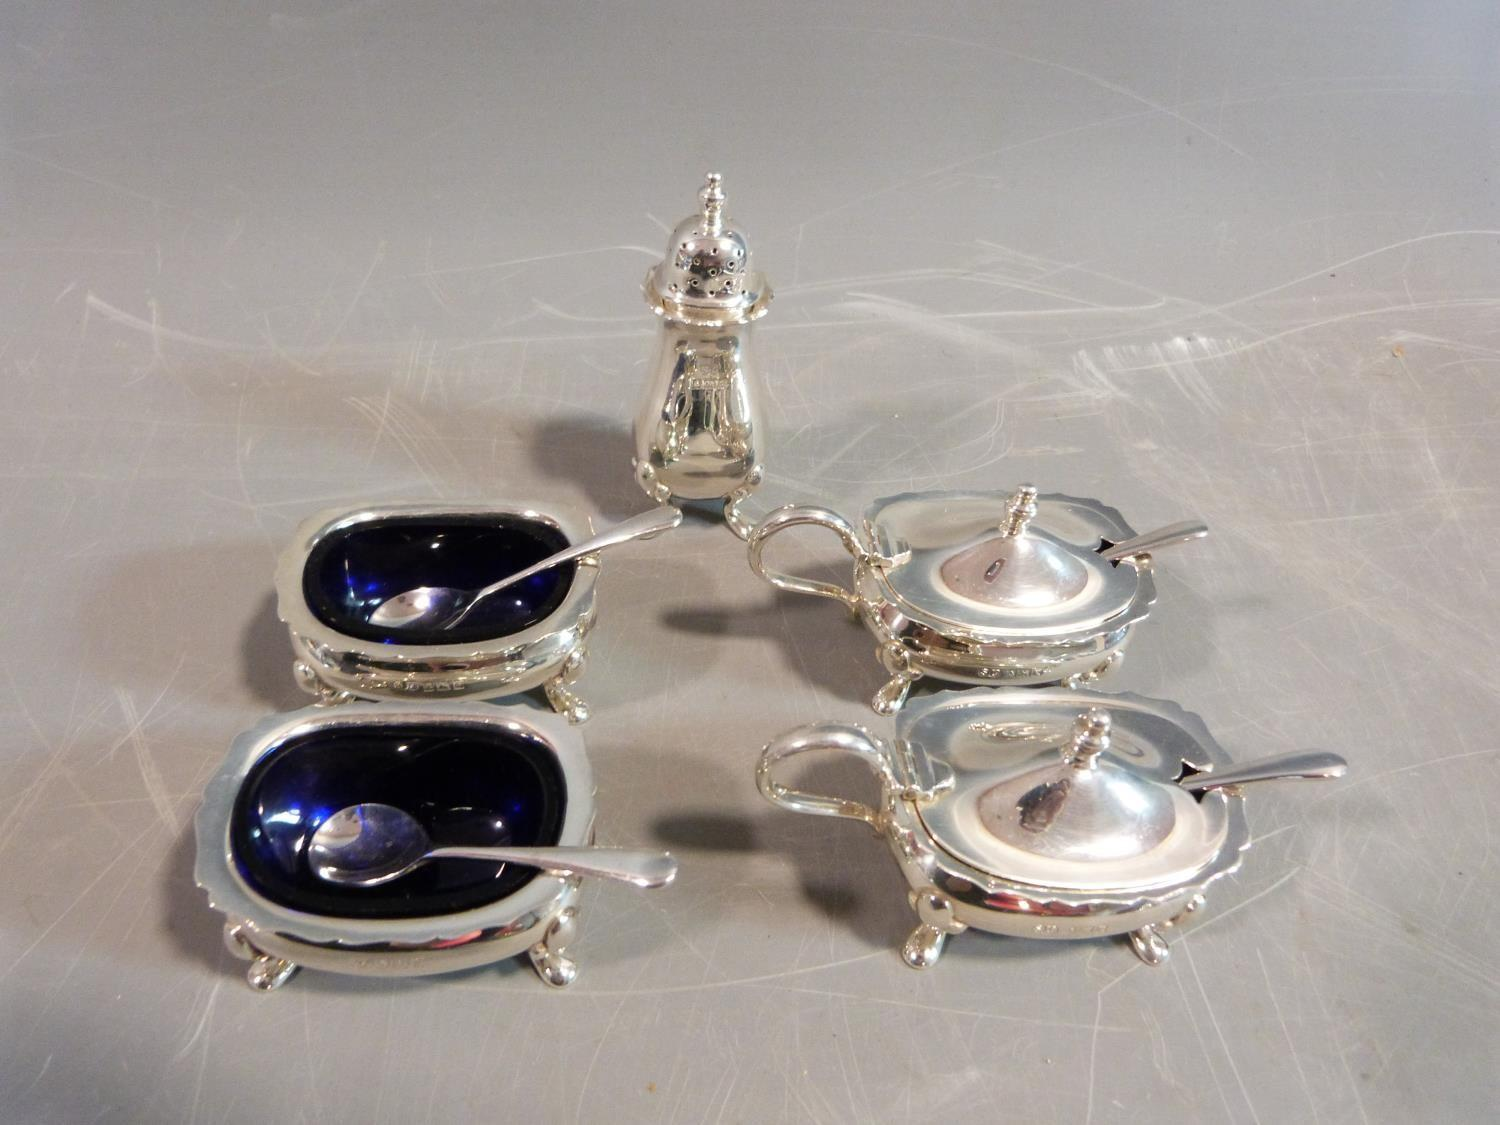 Silver cruets and salts and a pepper shaker. Hallmarked: SLd for William Suckling Ltd,1955,